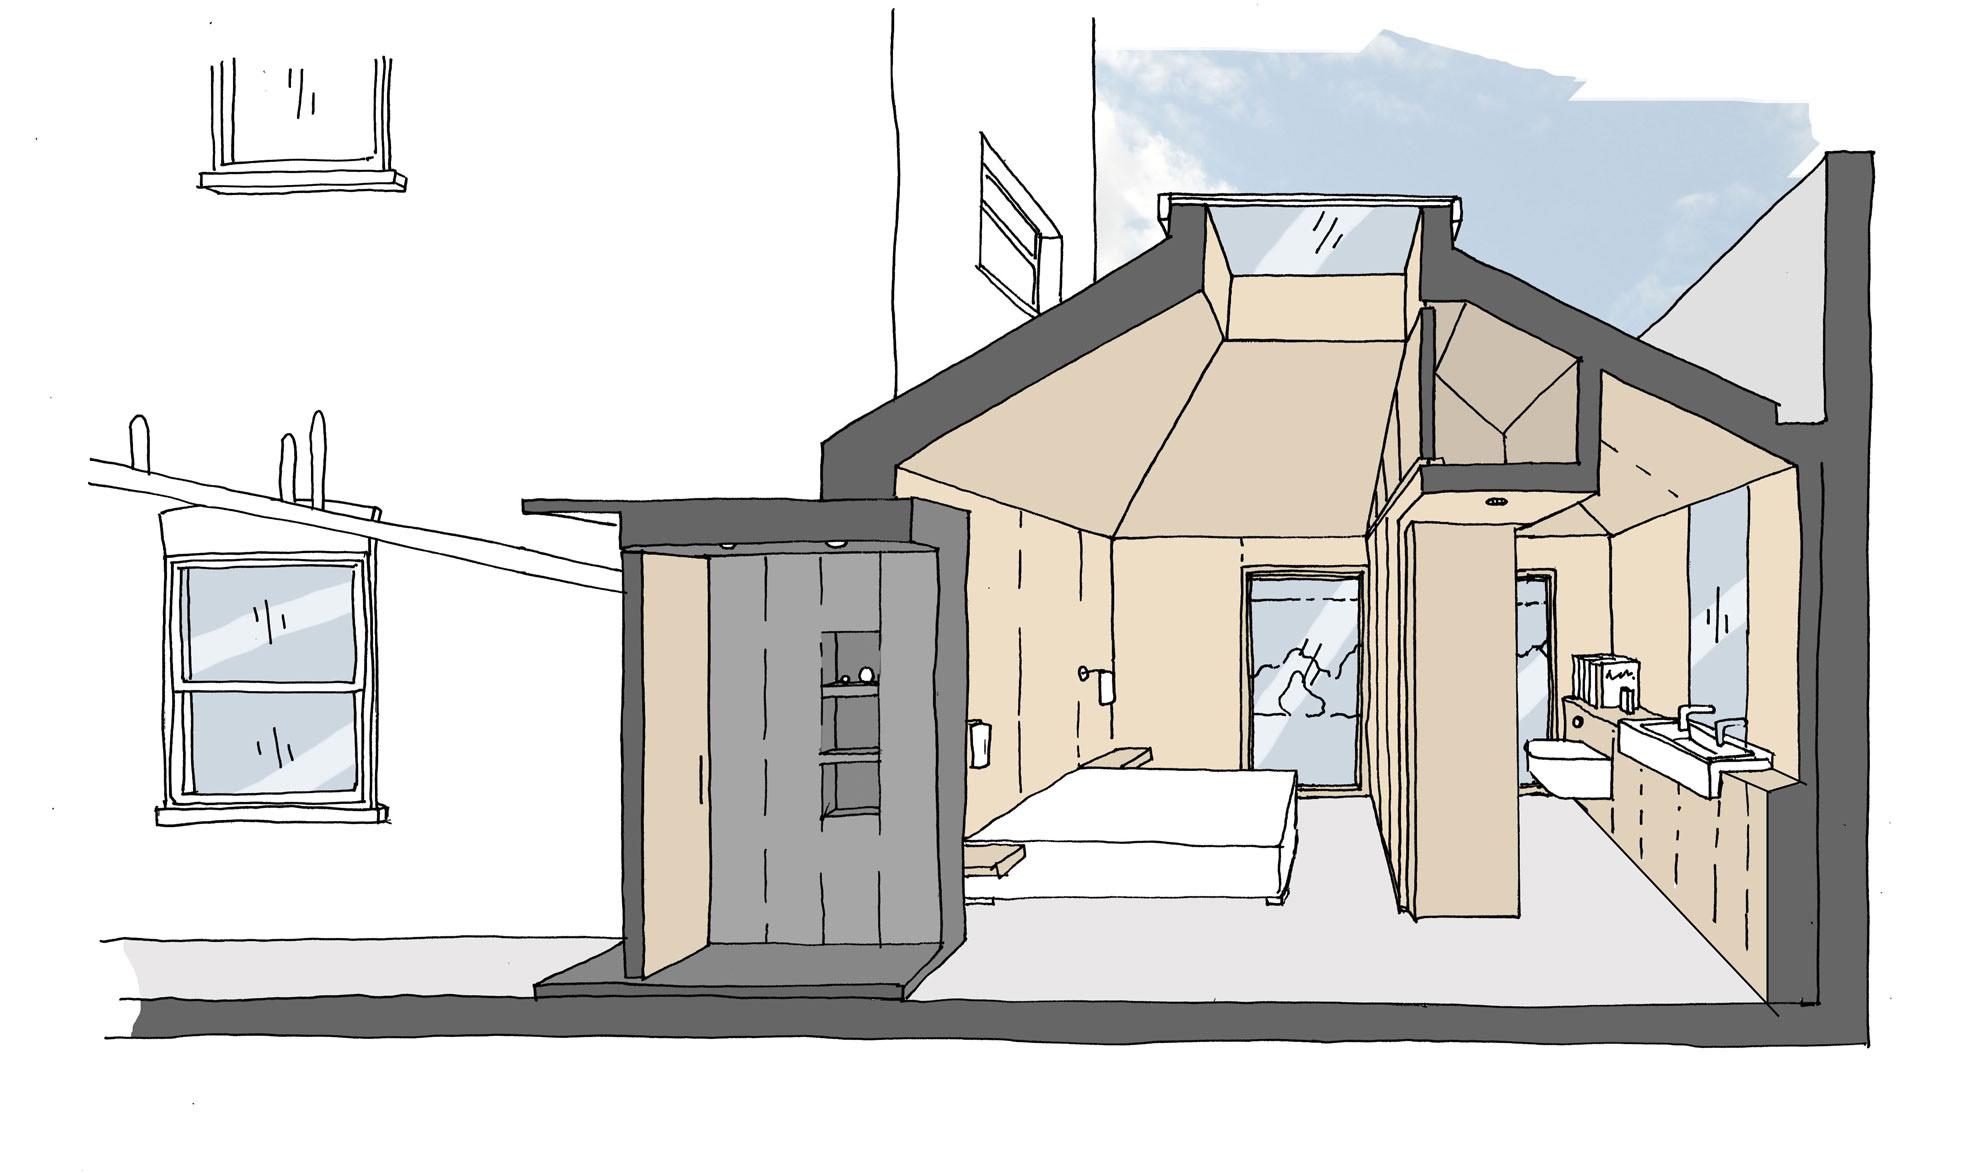 Self contained garden bedroom extension including a vaulted ziggurat roof form.